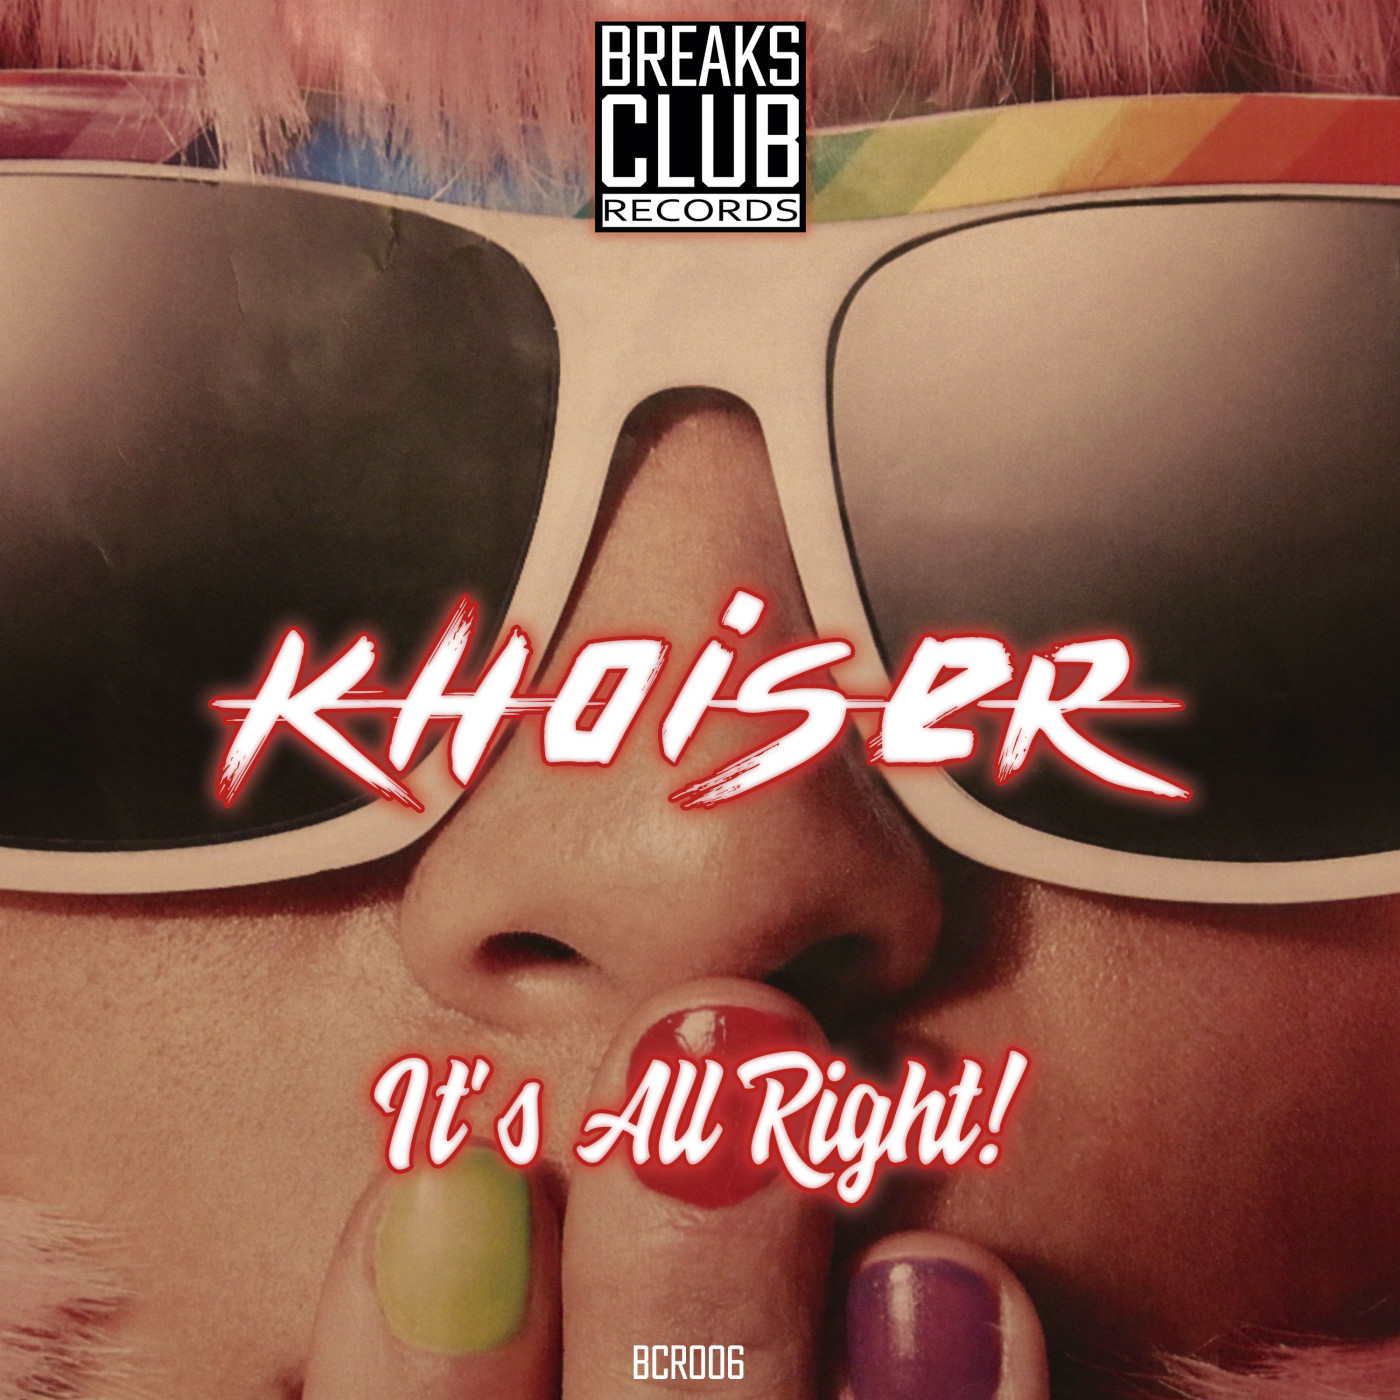 khoiser it's all right + breakbeat + temazo + breaks + breaks club records + freestylers + prodigy + retro + spotify + beatport